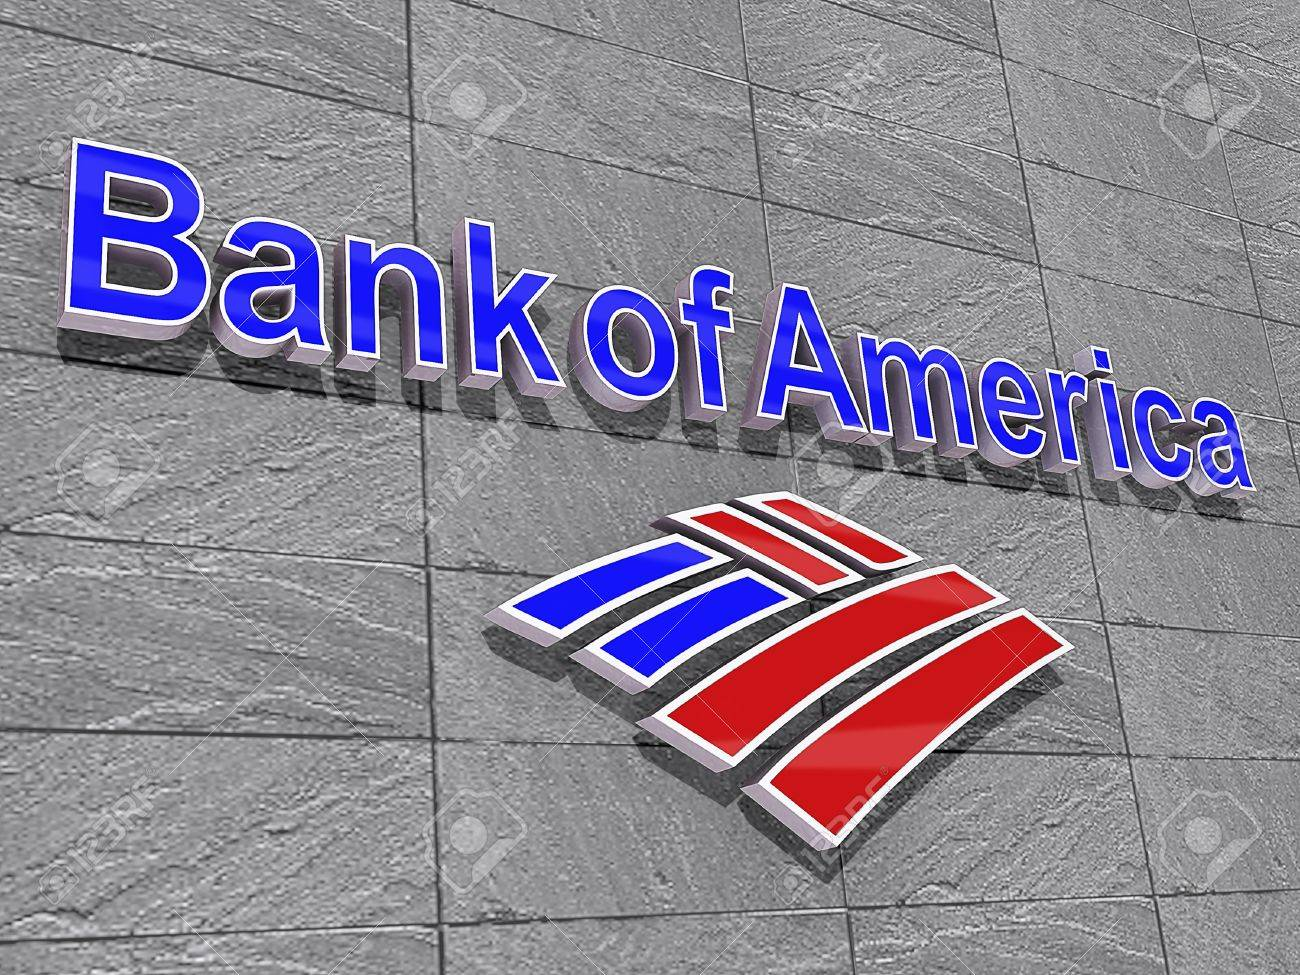 Vancouver, British Columbia, Canada - July 15, 2012 - Bank of America Logo on a Stone Slate Background. Stock Photo - 14443599